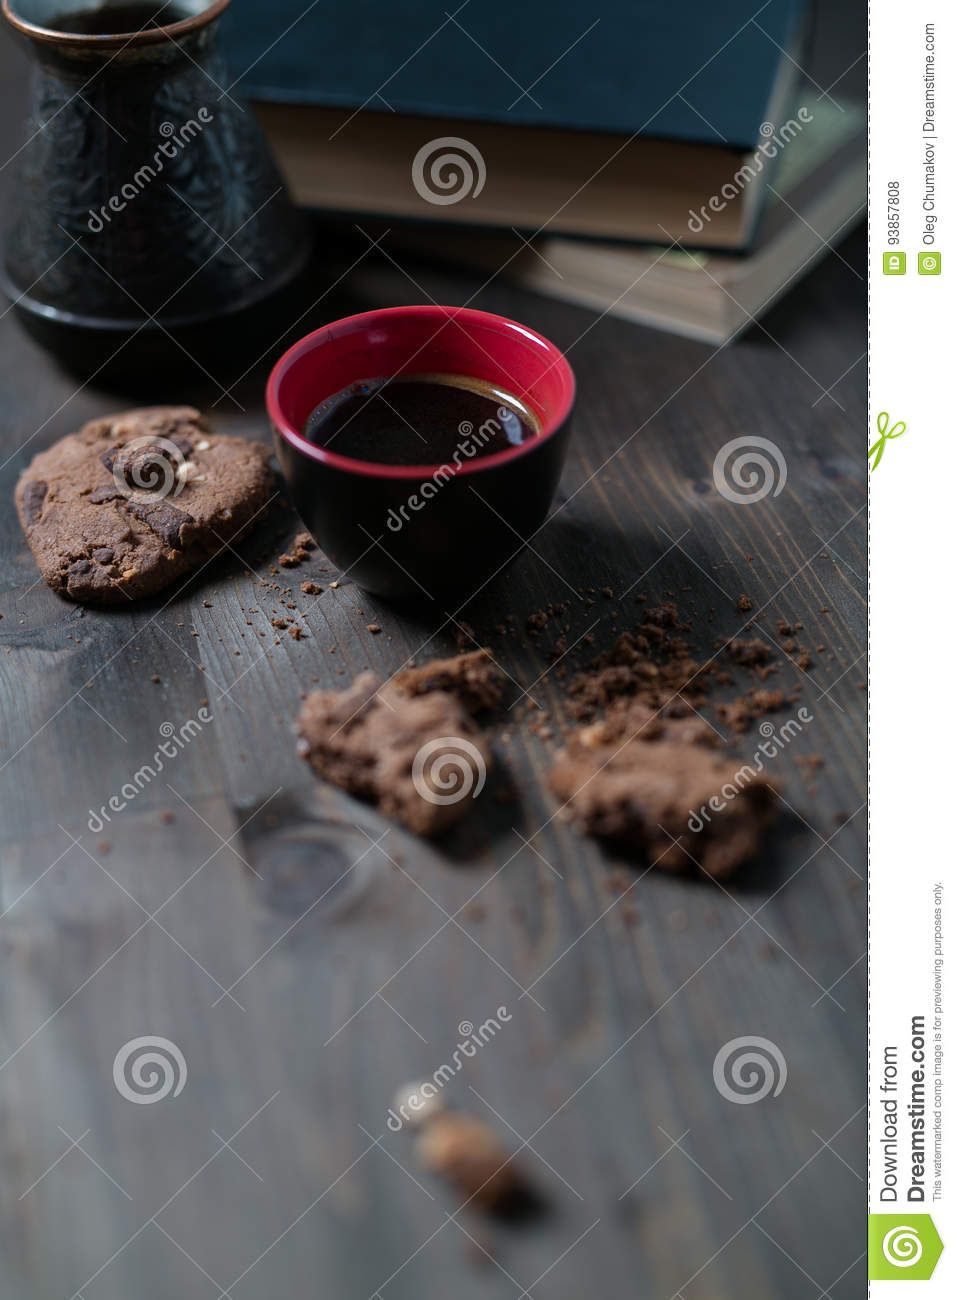 Coffee Cup and cookies are next to the stack of books